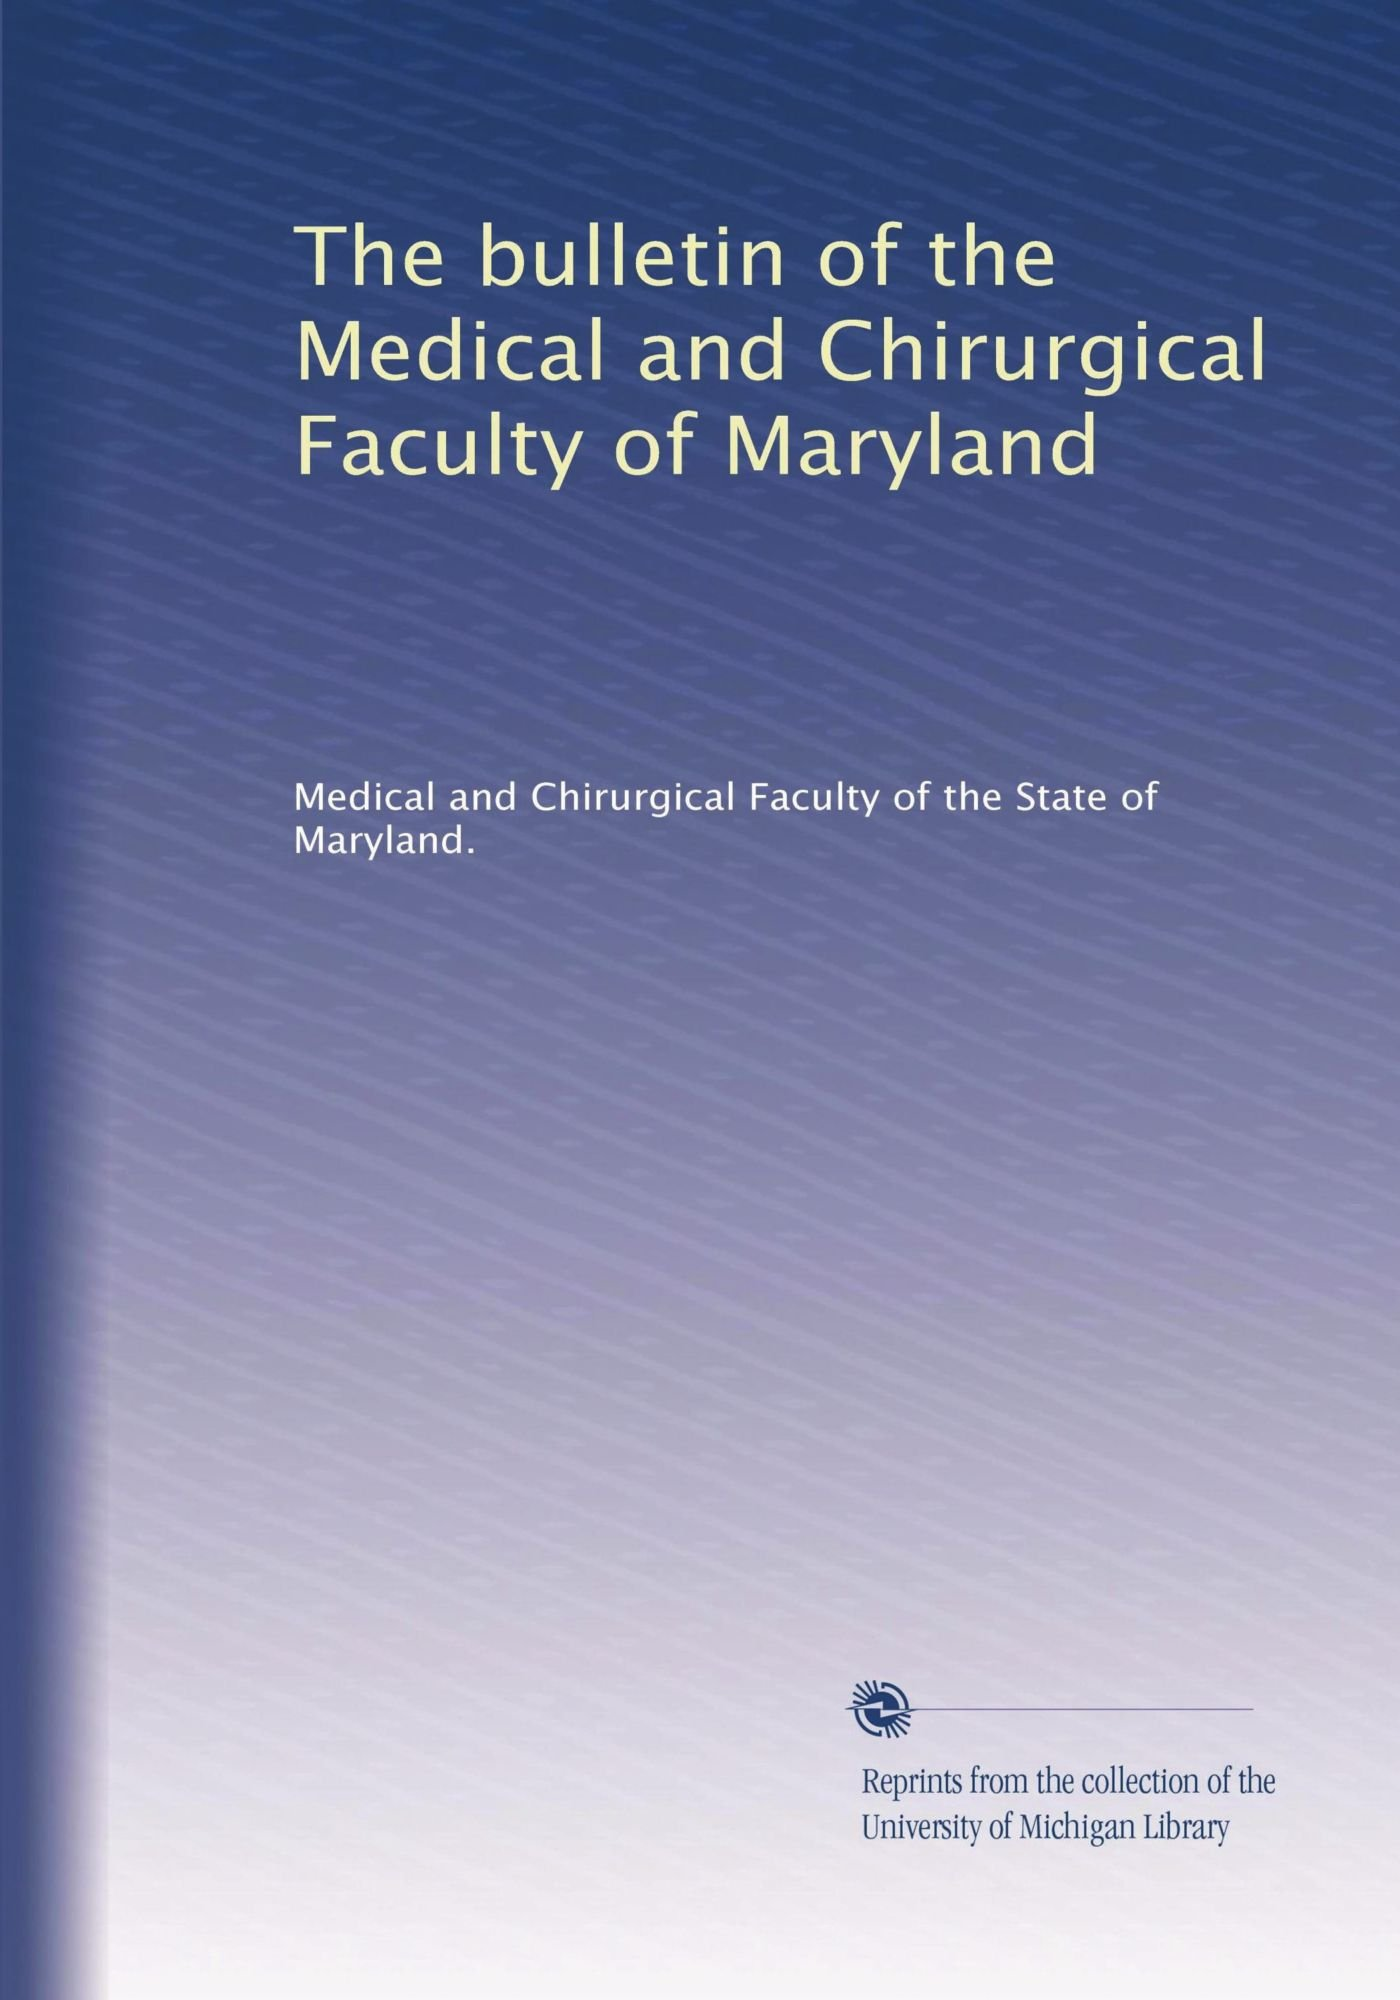 Download The bulletin of the Medical and Chirurgical Faculty of Maryland (Volume 61) pdf